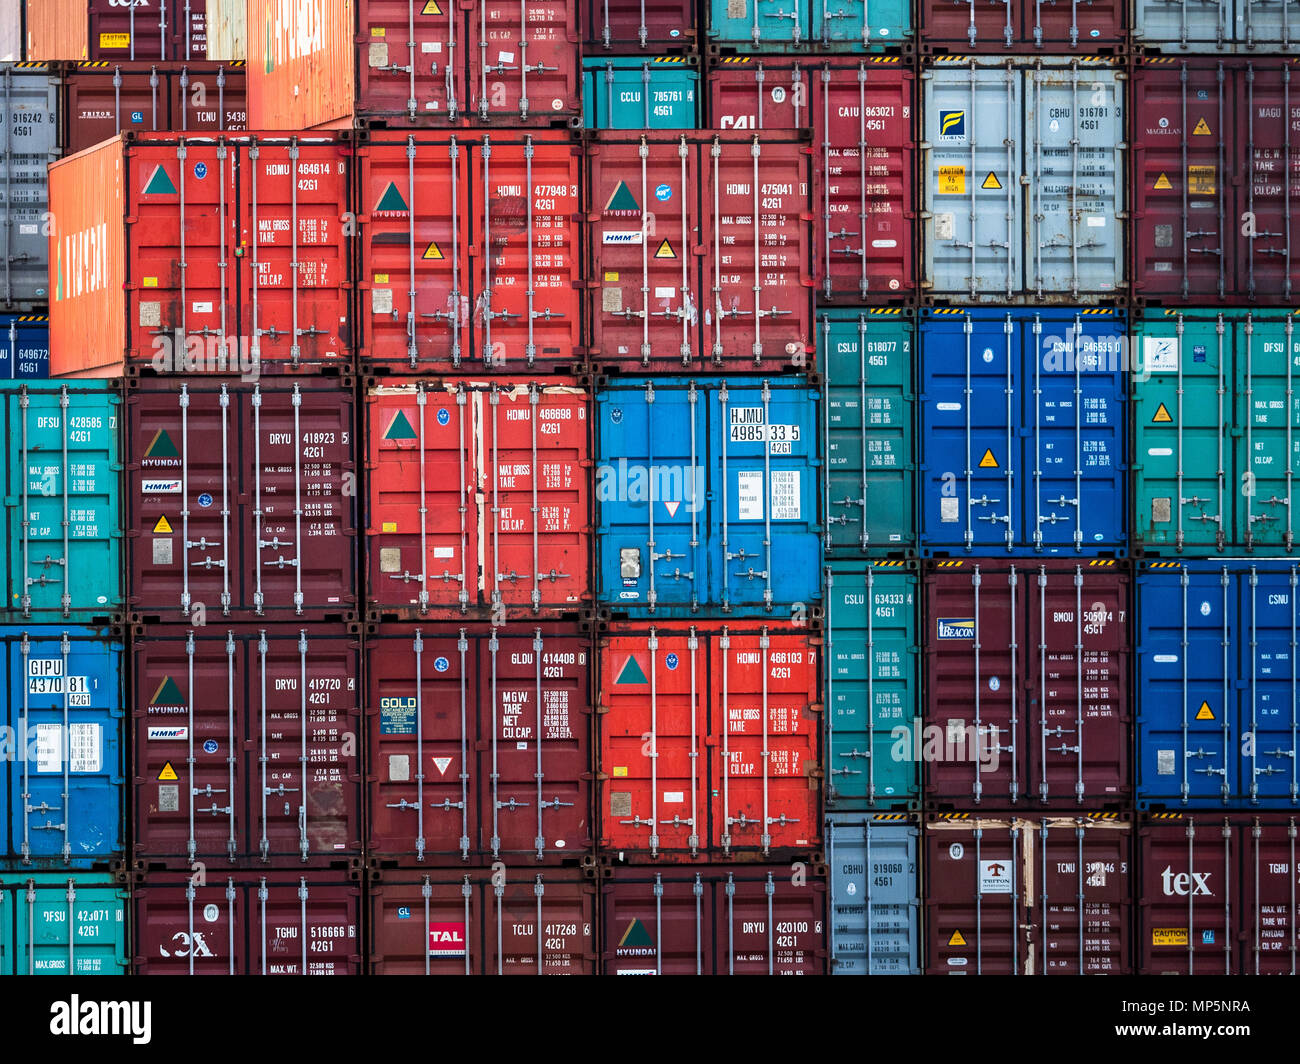 Global Trade - Shipping containers in transit between ports - Port of Felixstowe UK - Stock Image